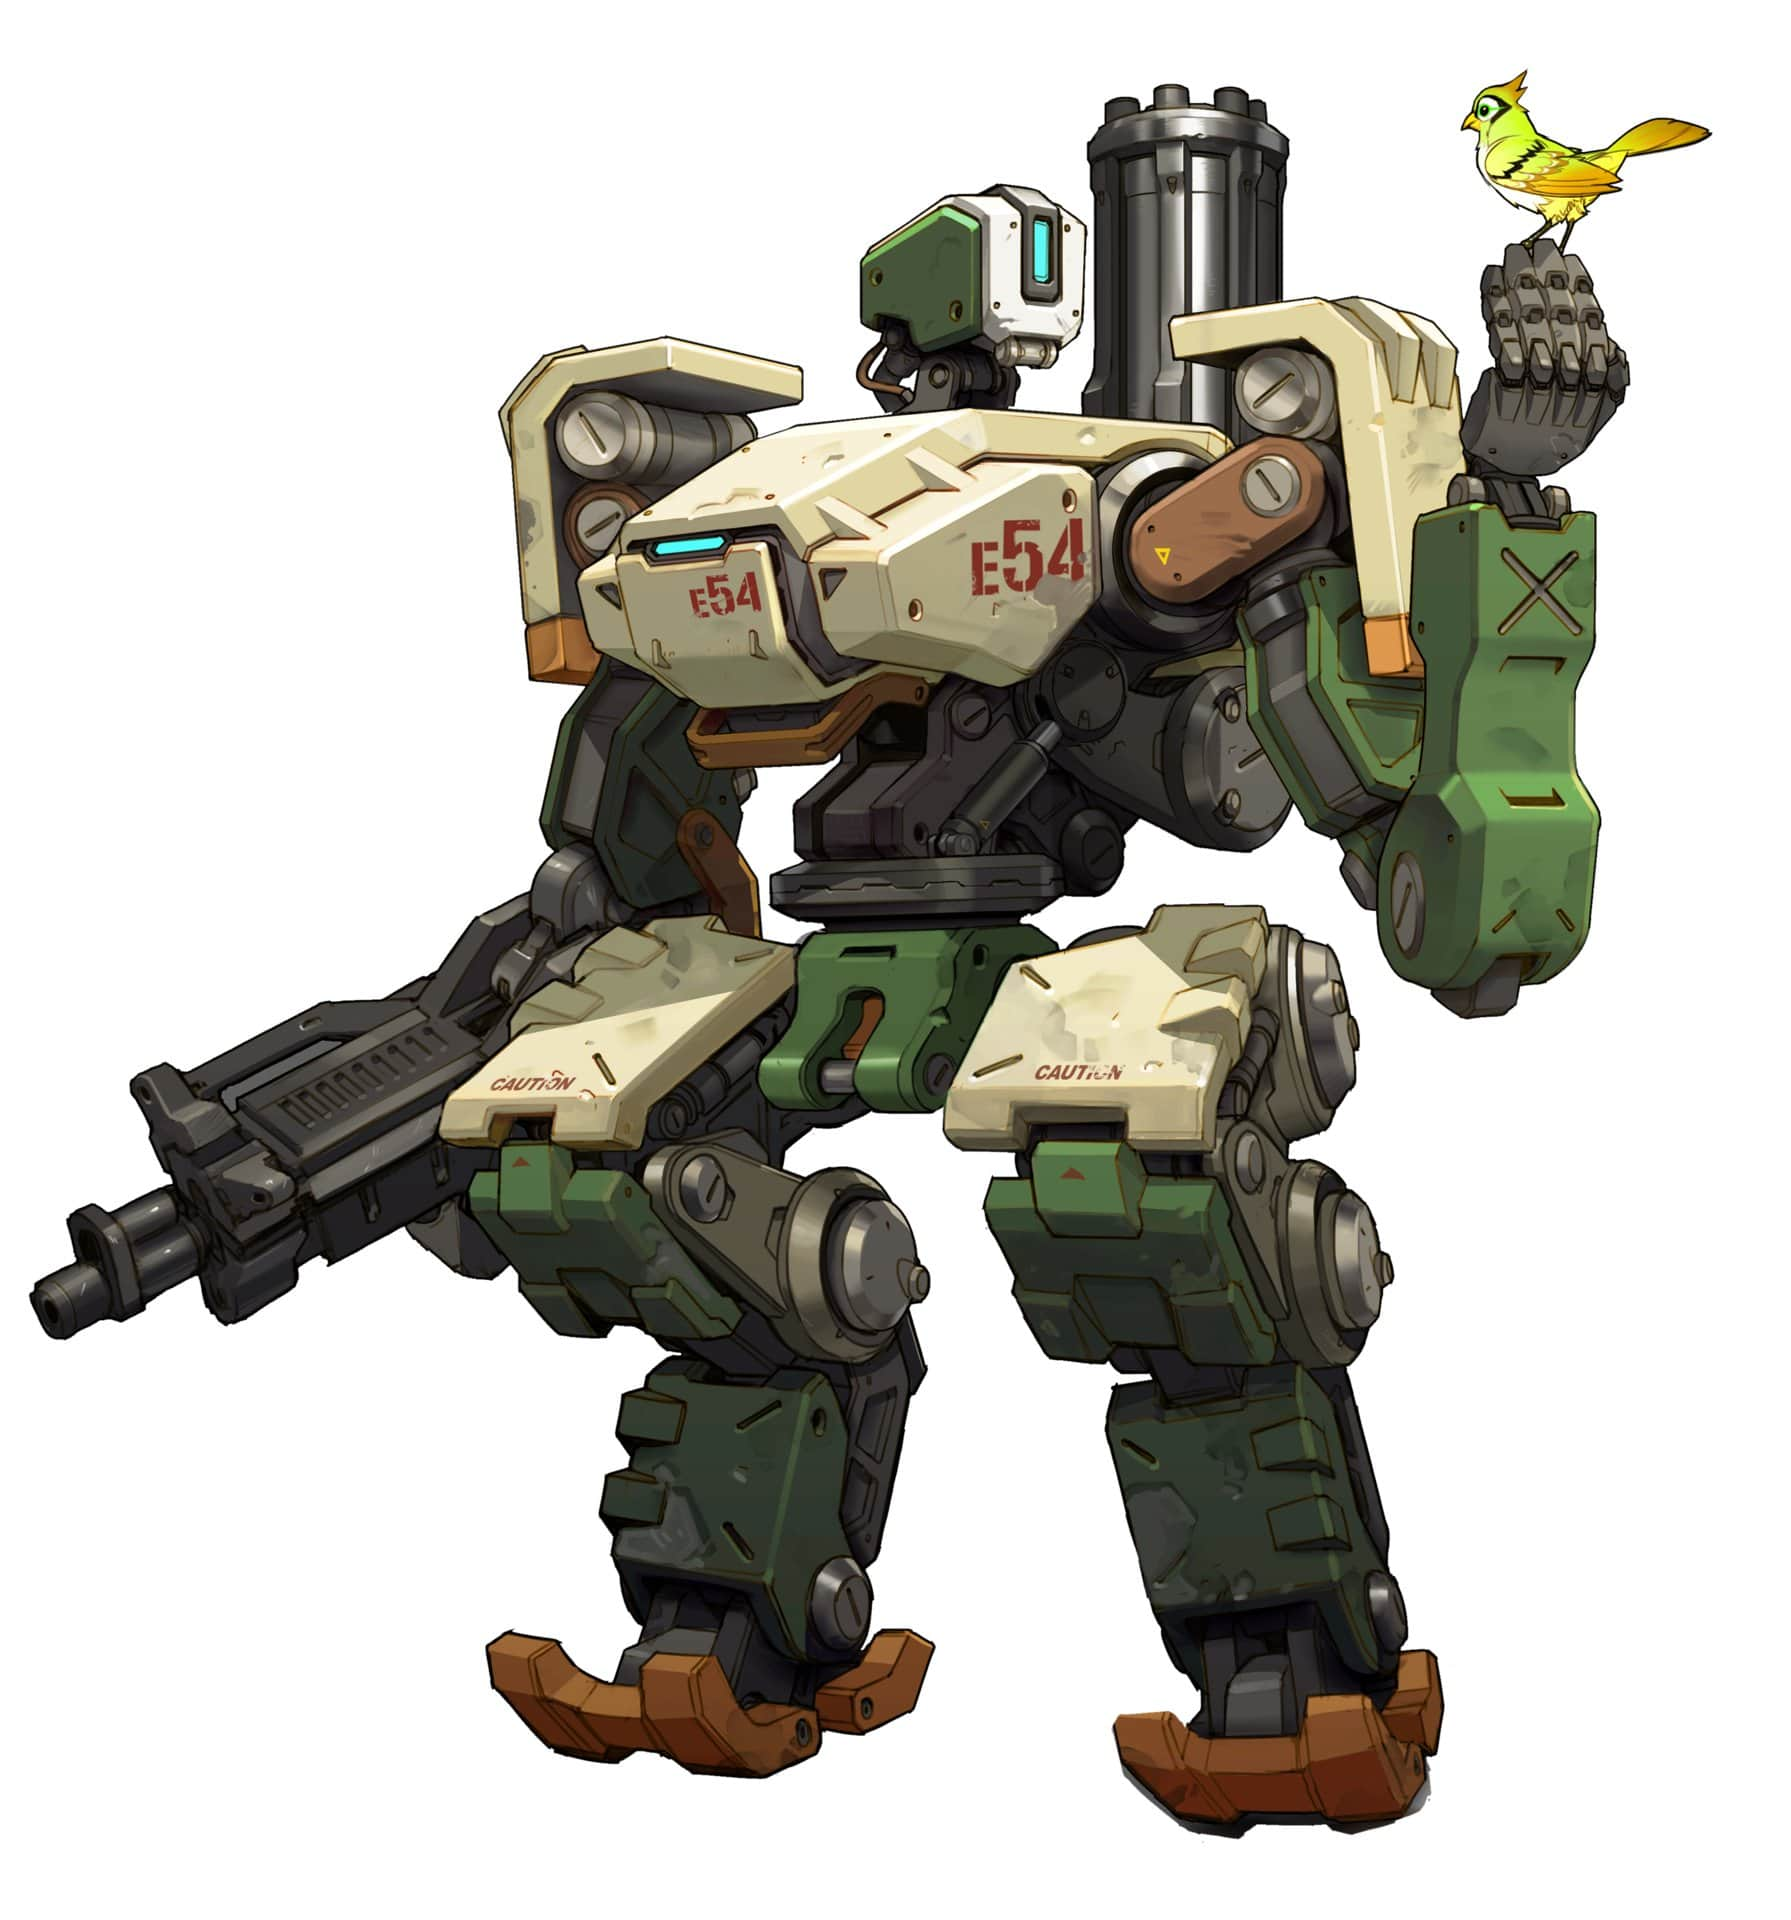 Overwatch : Bastion For mobile